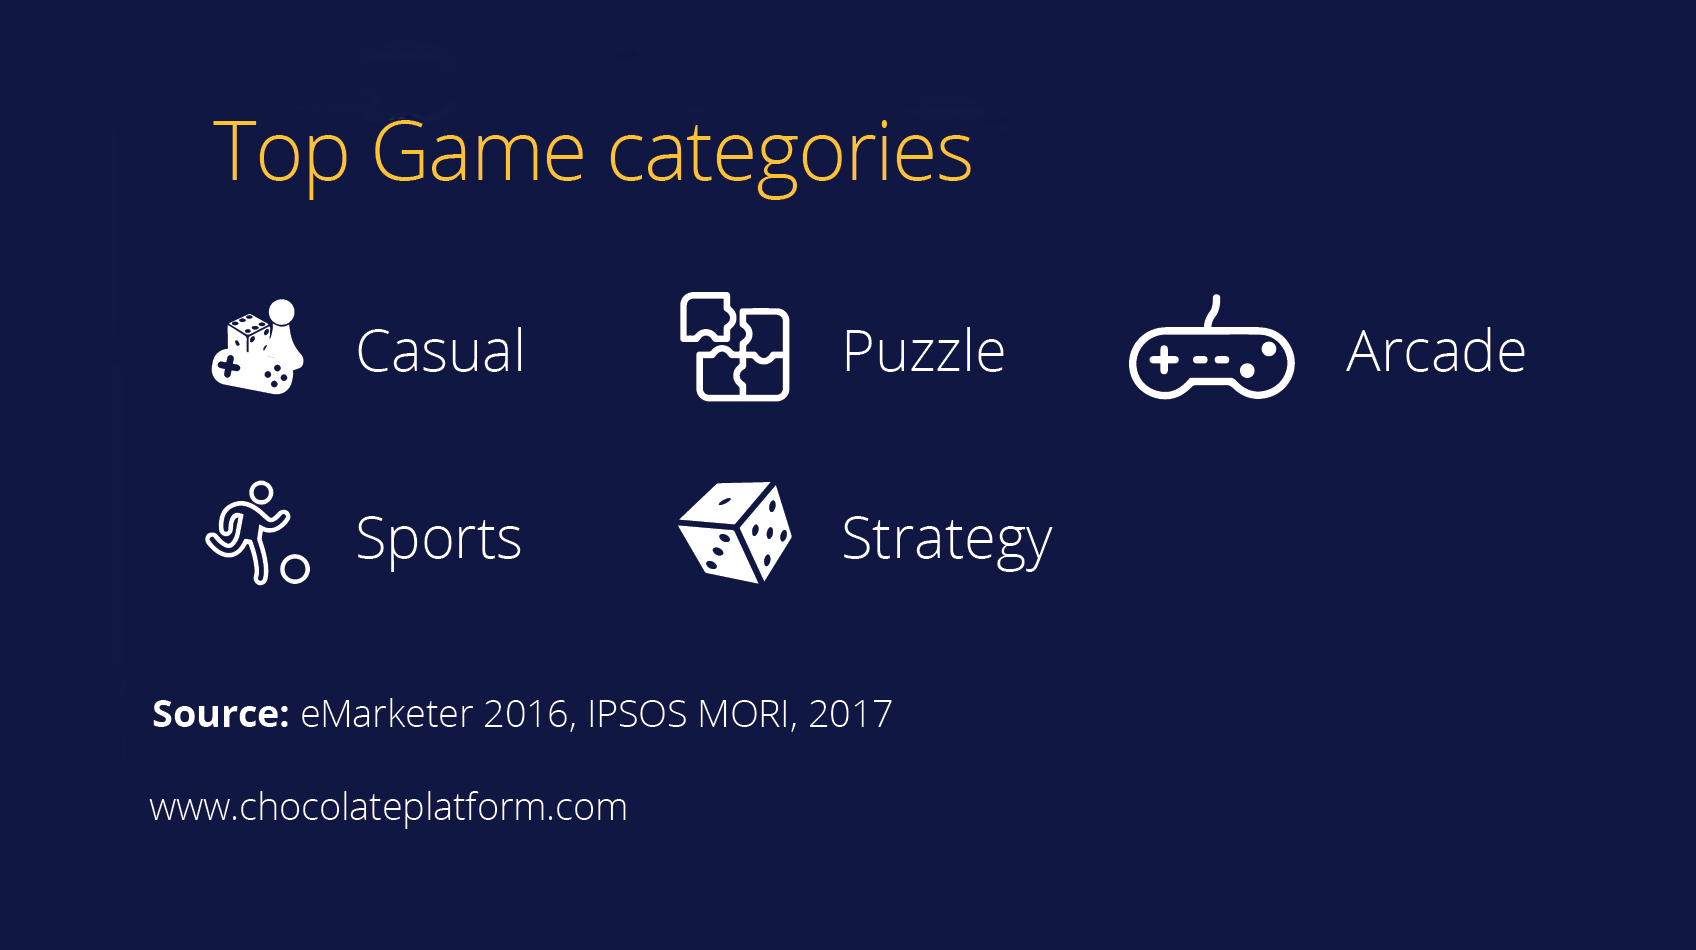 Top Game Categories